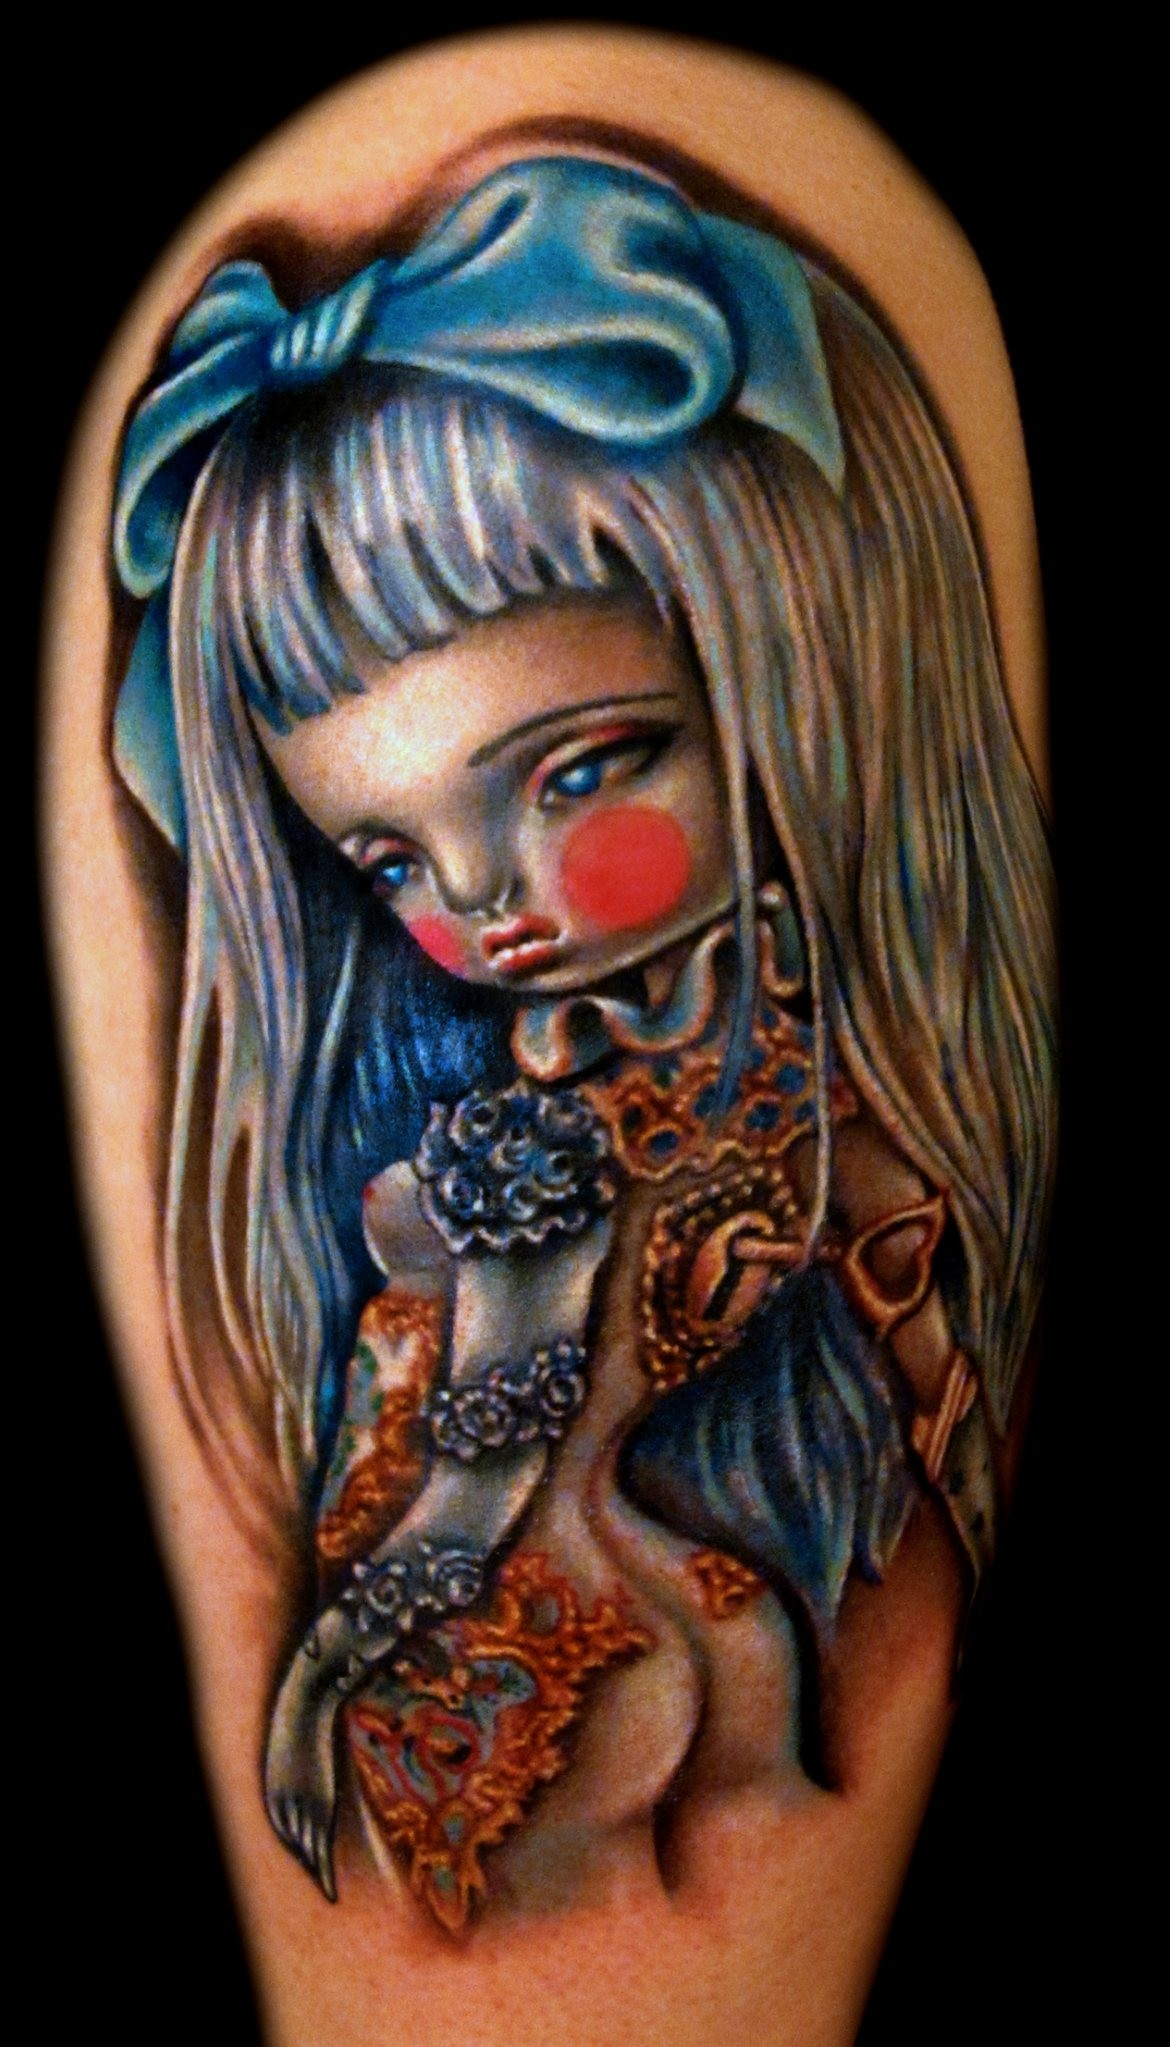 Tattoo Pinup Trinket Kukula Color Liz Cook Dallas Texas 300res.jpg